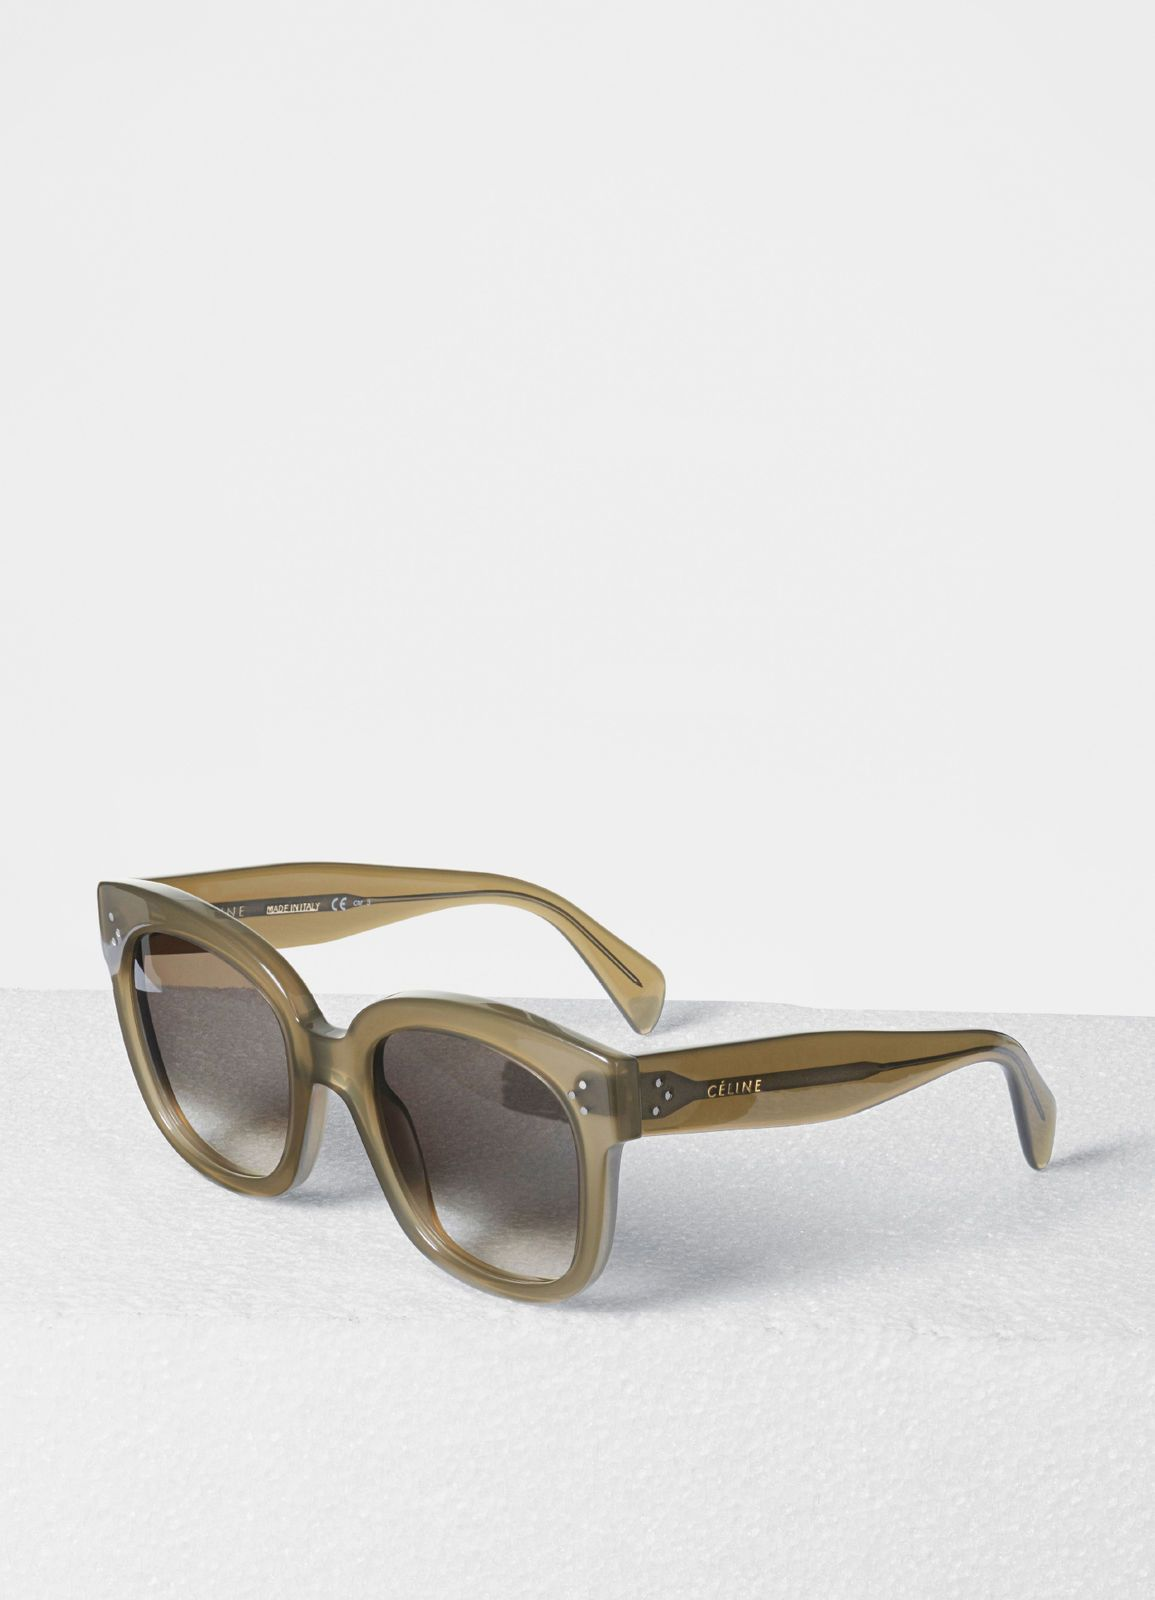 27ae435772d2 Oversized Sunglasses in Acetate - Sunglasses